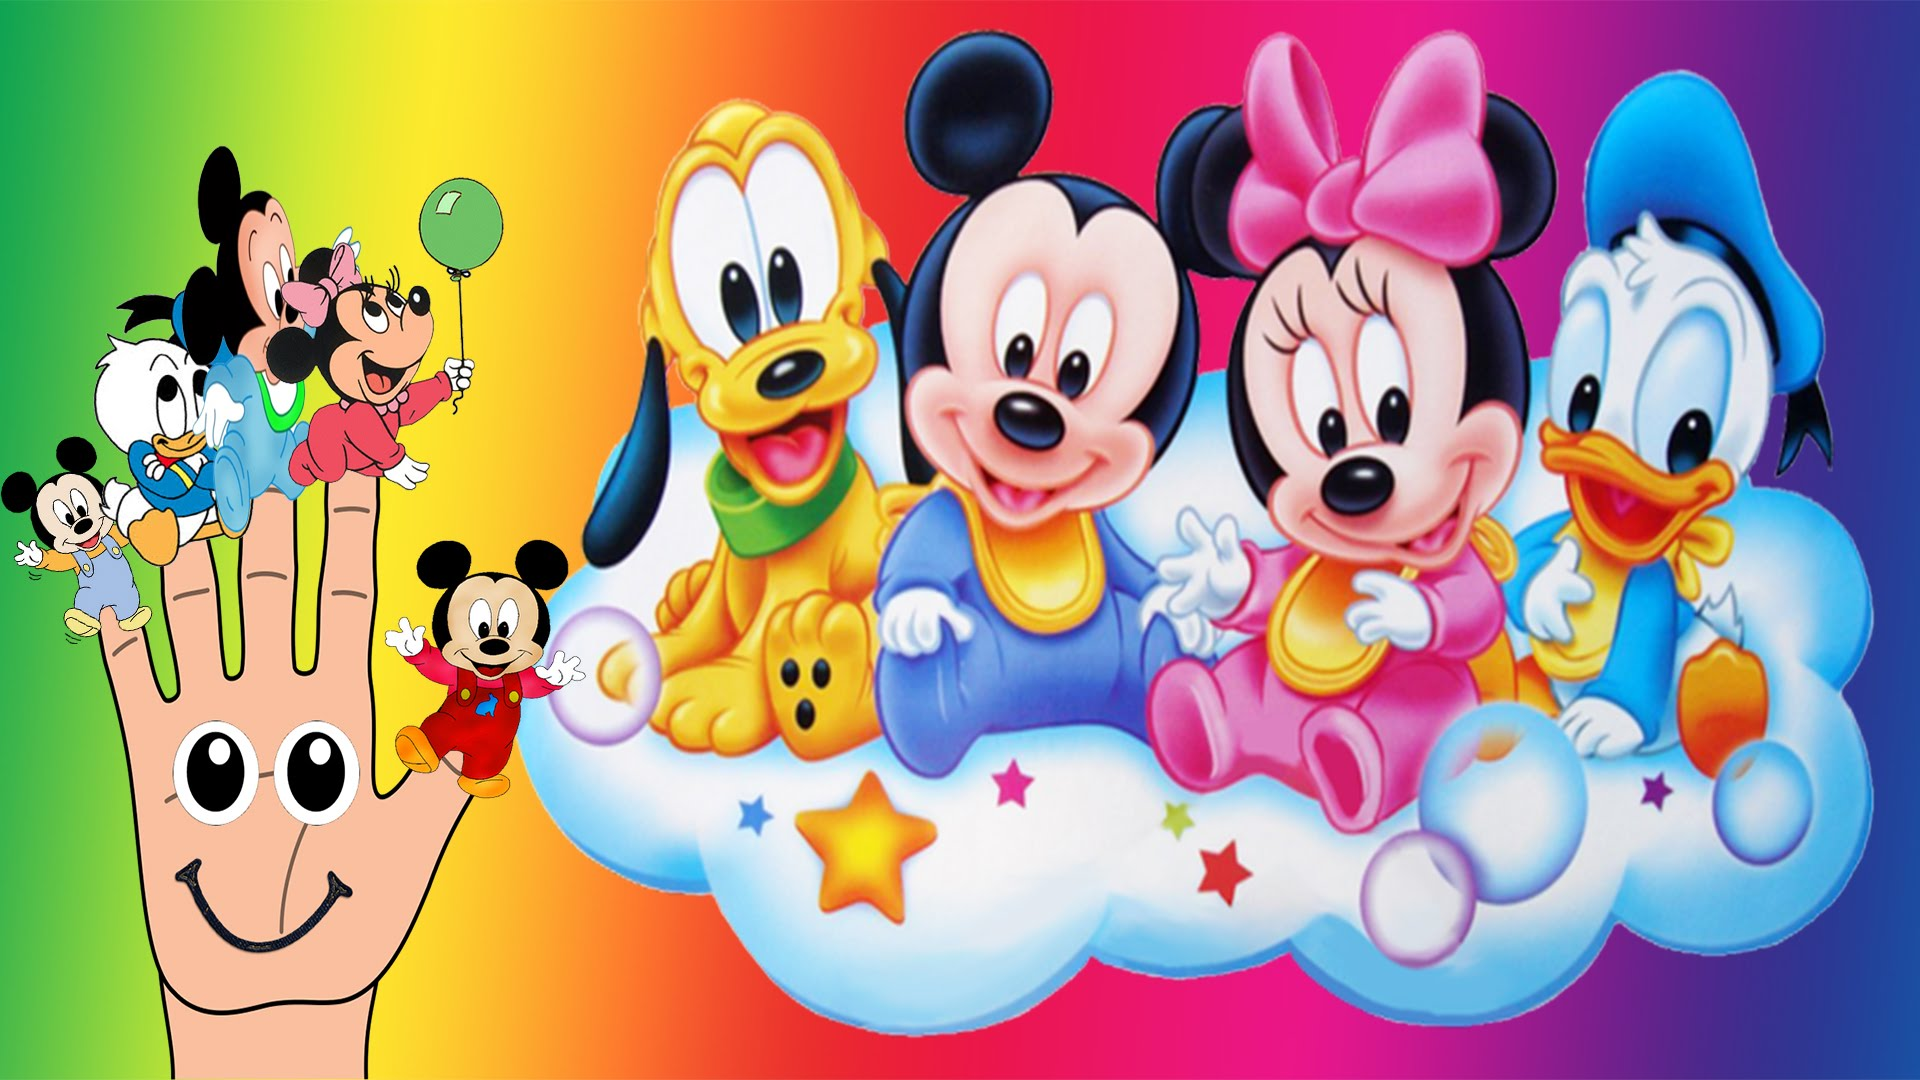 Iphone 5 Hd Wallpapers Cars Adorable Baby Mickey Mouse Pluto Minnie Donald Duck